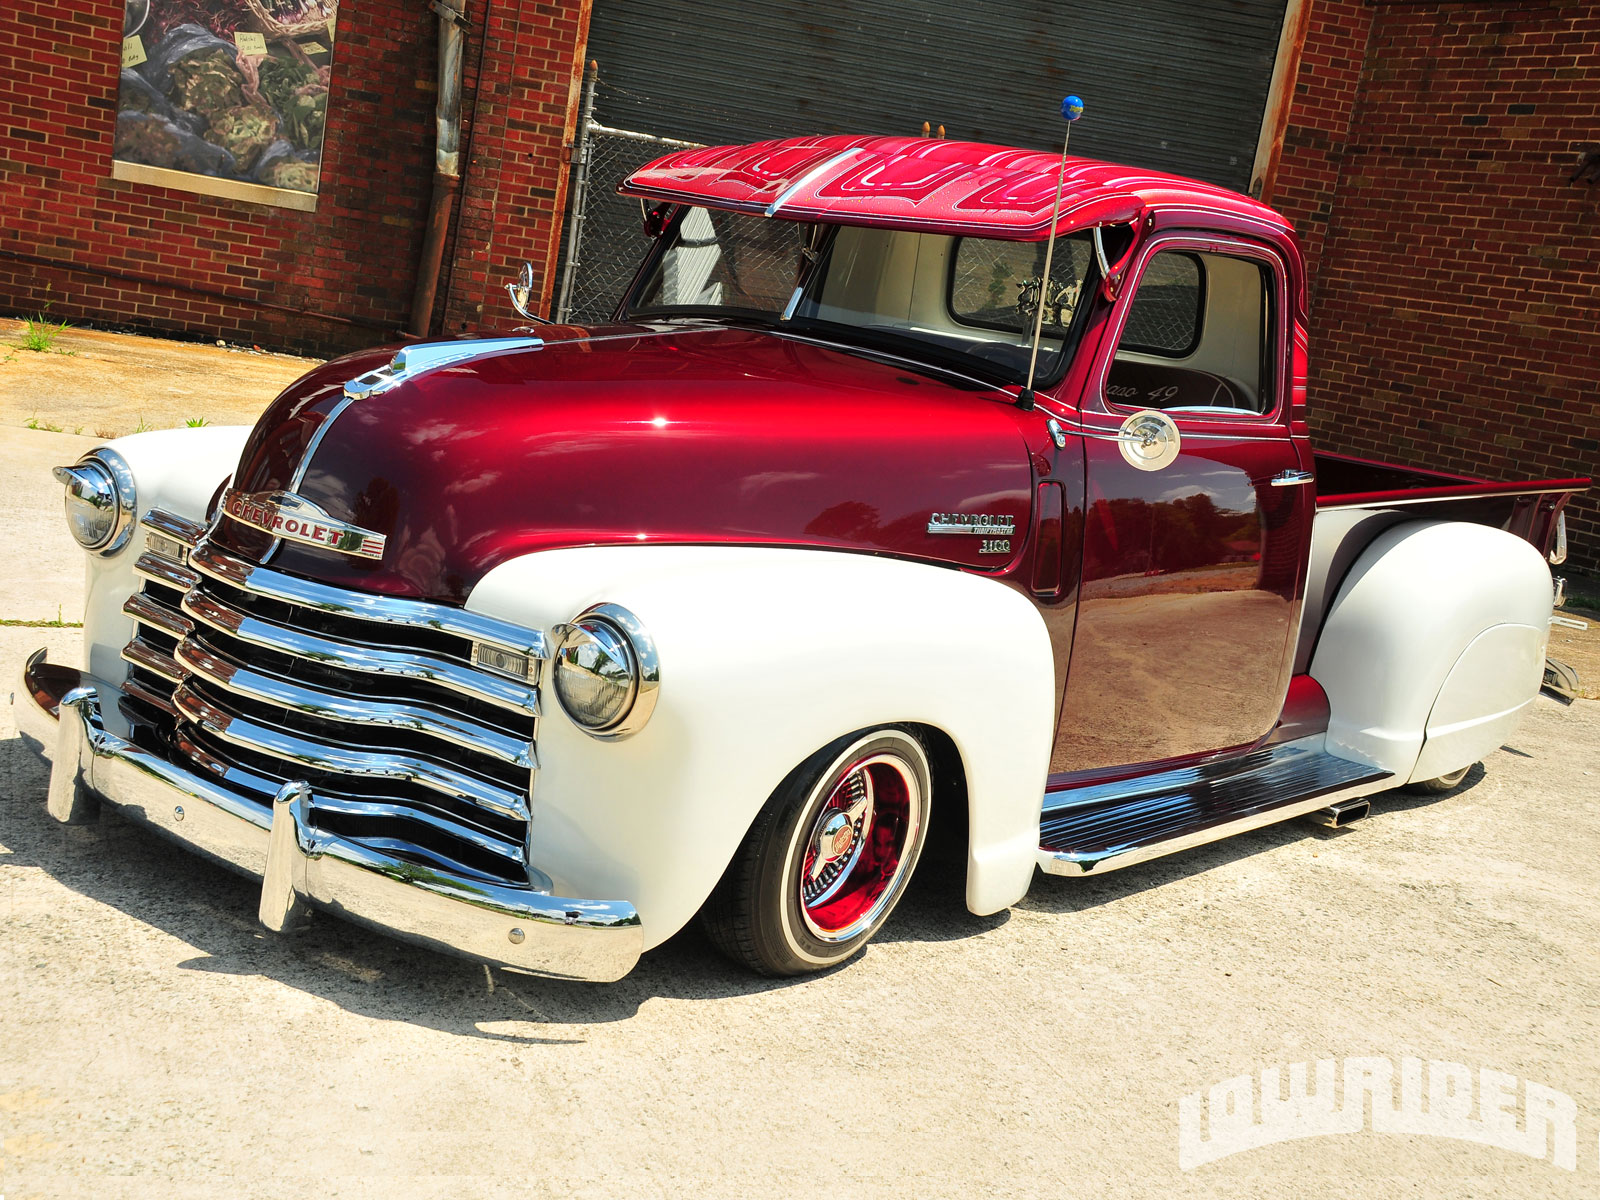 1949 chevy truck best lowrider styles chevy trucks. Black Bedroom Furniture Sets. Home Design Ideas